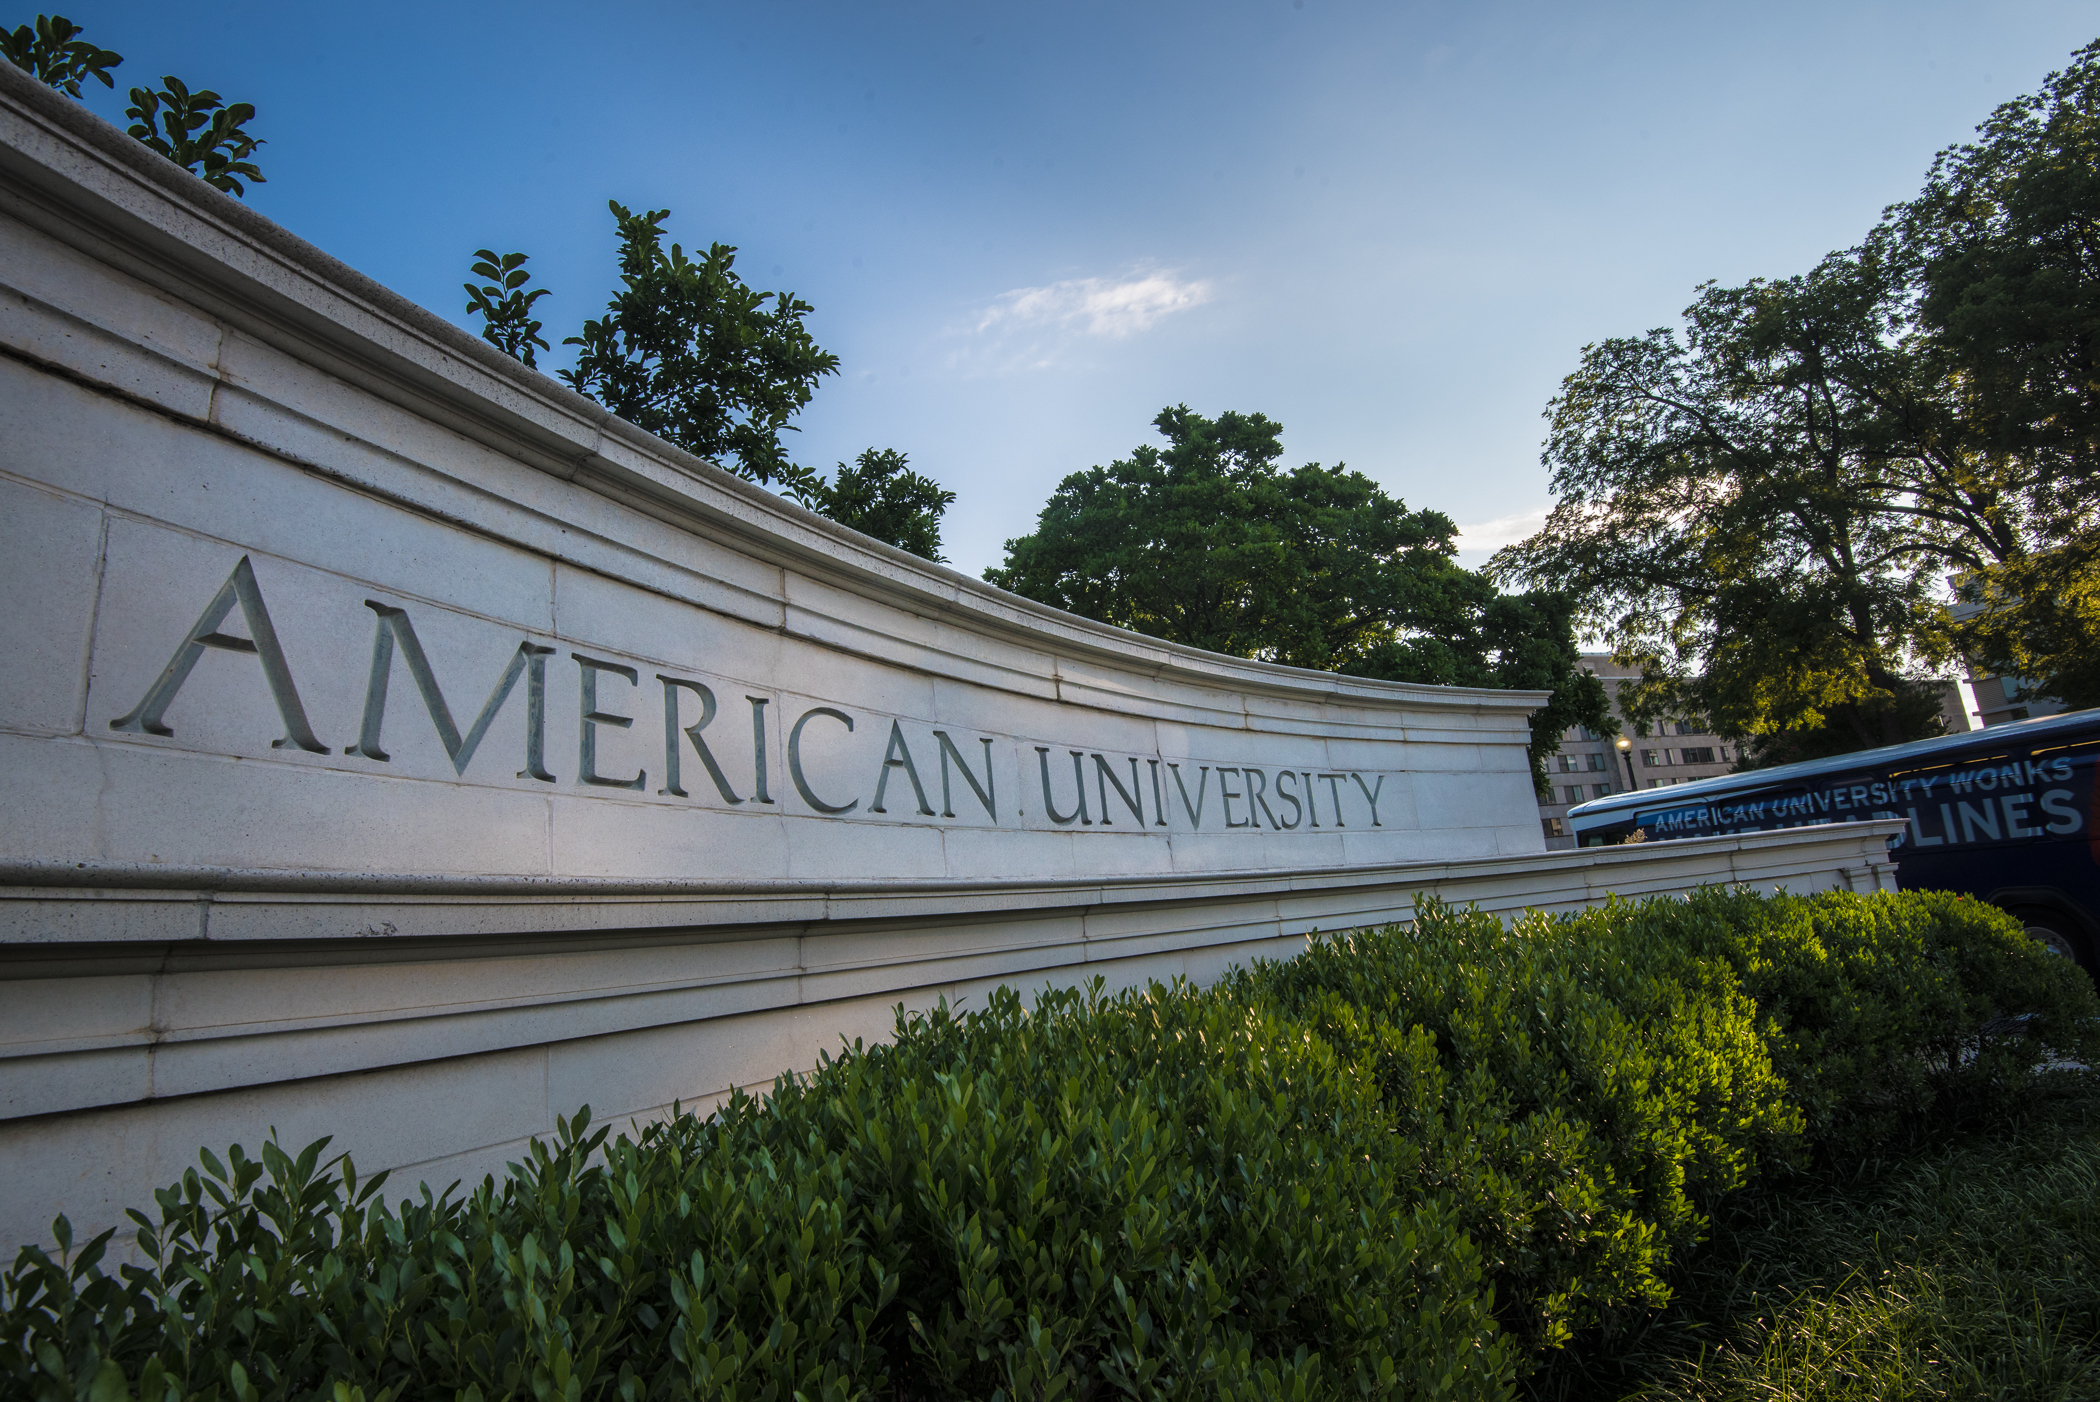 phot of the American University sign at the main campus gate